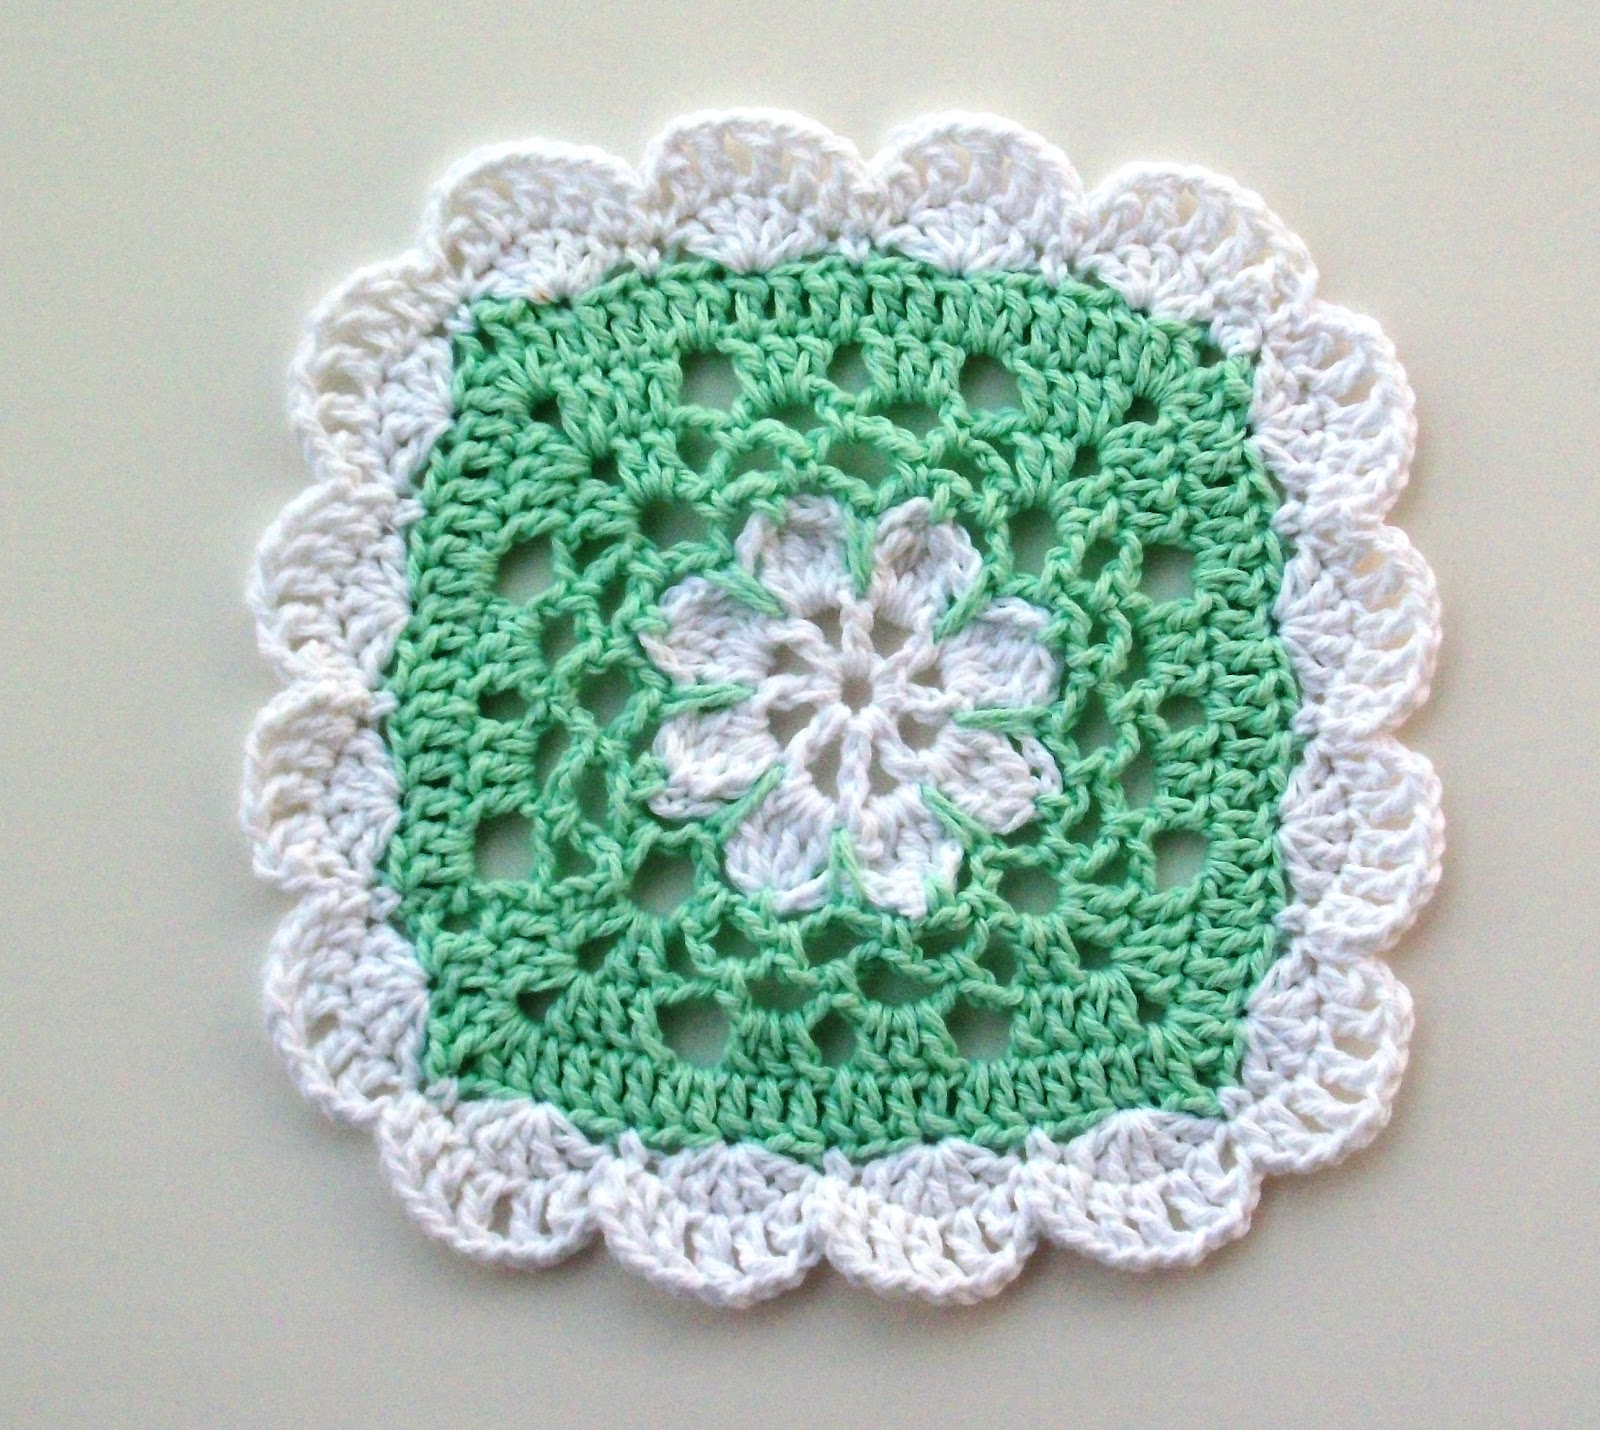 Crochet Stitches Tr : ... stitches include sc dc tr lsc and trcl special stitches are explained